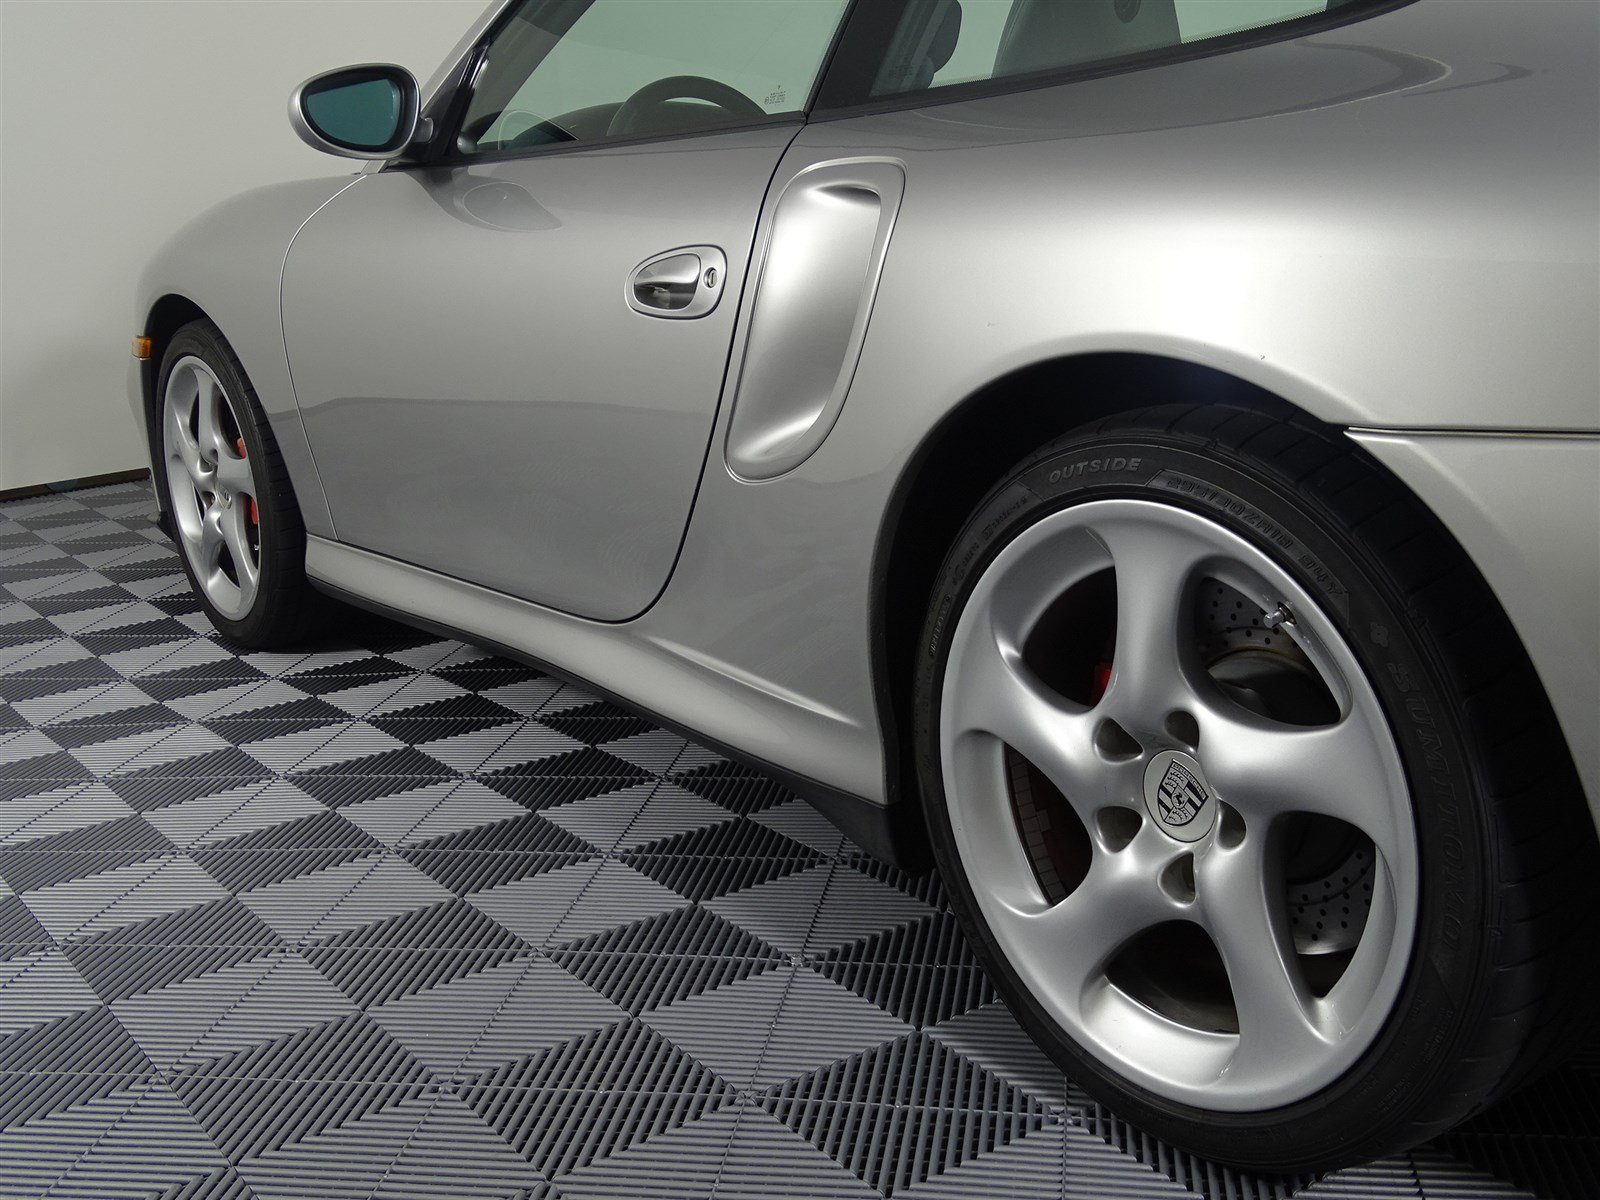 Pre-Owned 2002 Porsche 911 Turbo 2DR CPE